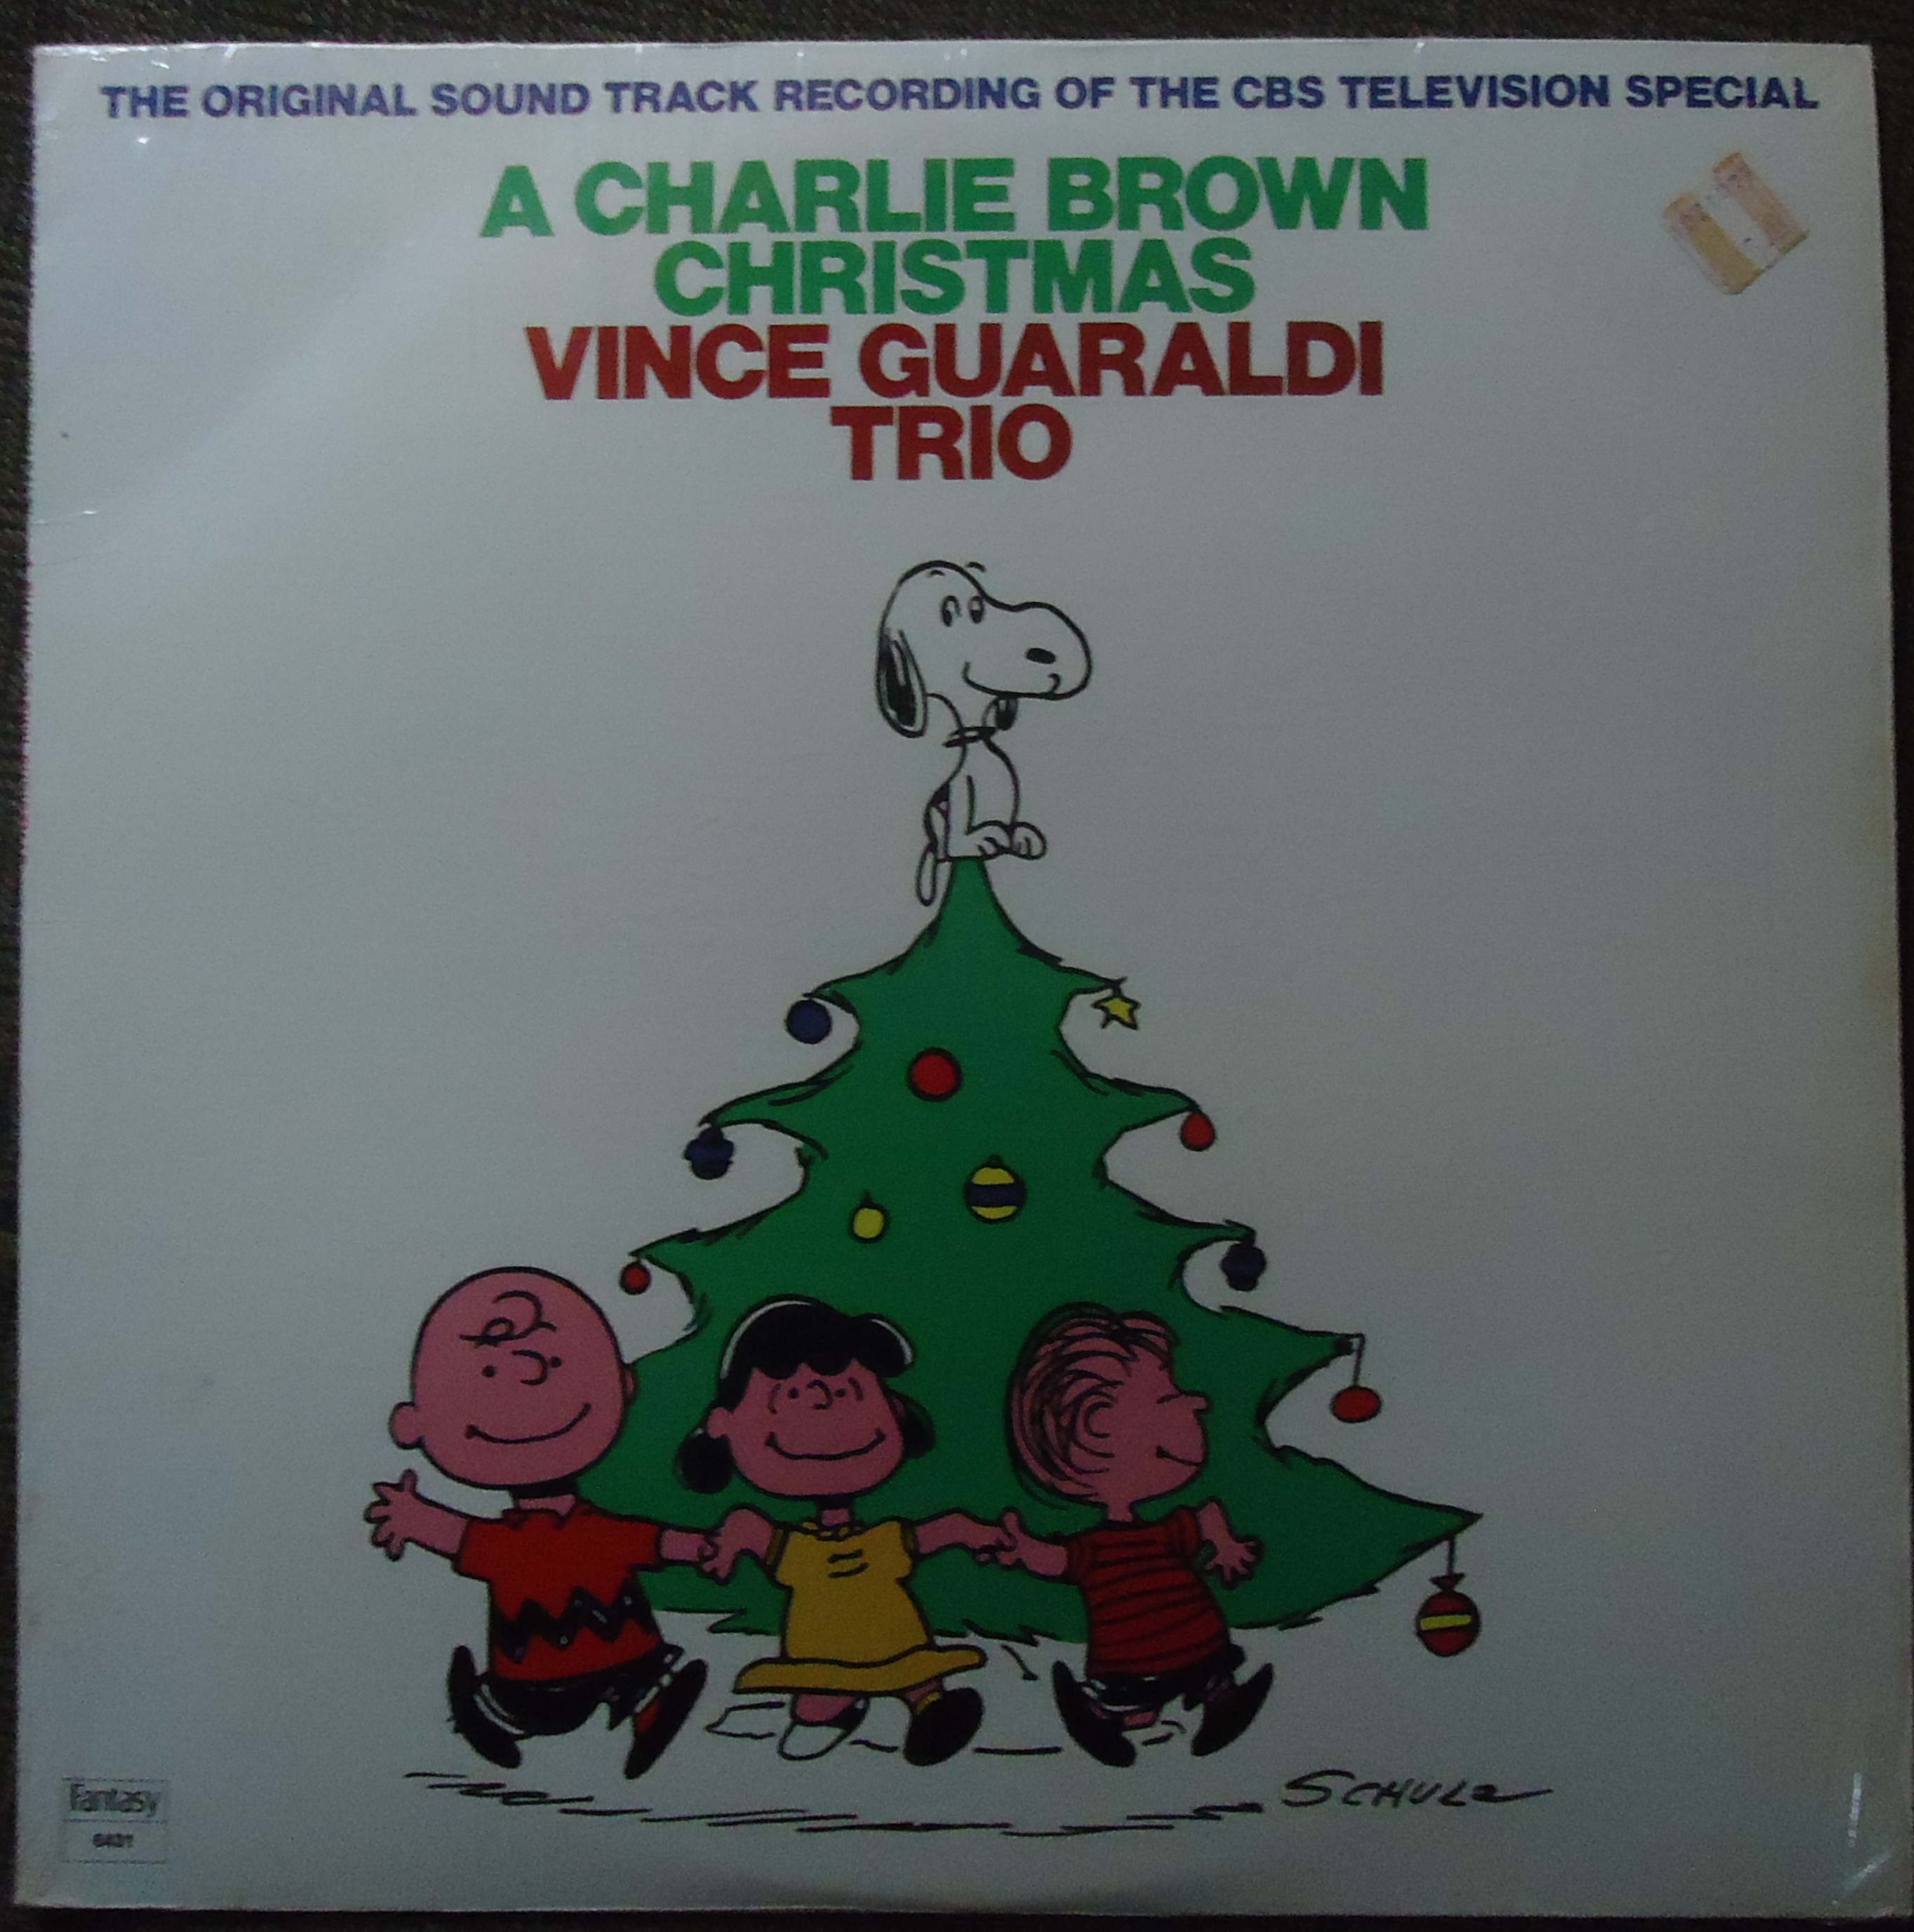 When Is Charlie Brown Christmas On.Hymies Vintage Records Charlie Brown S Christmas At Fifty